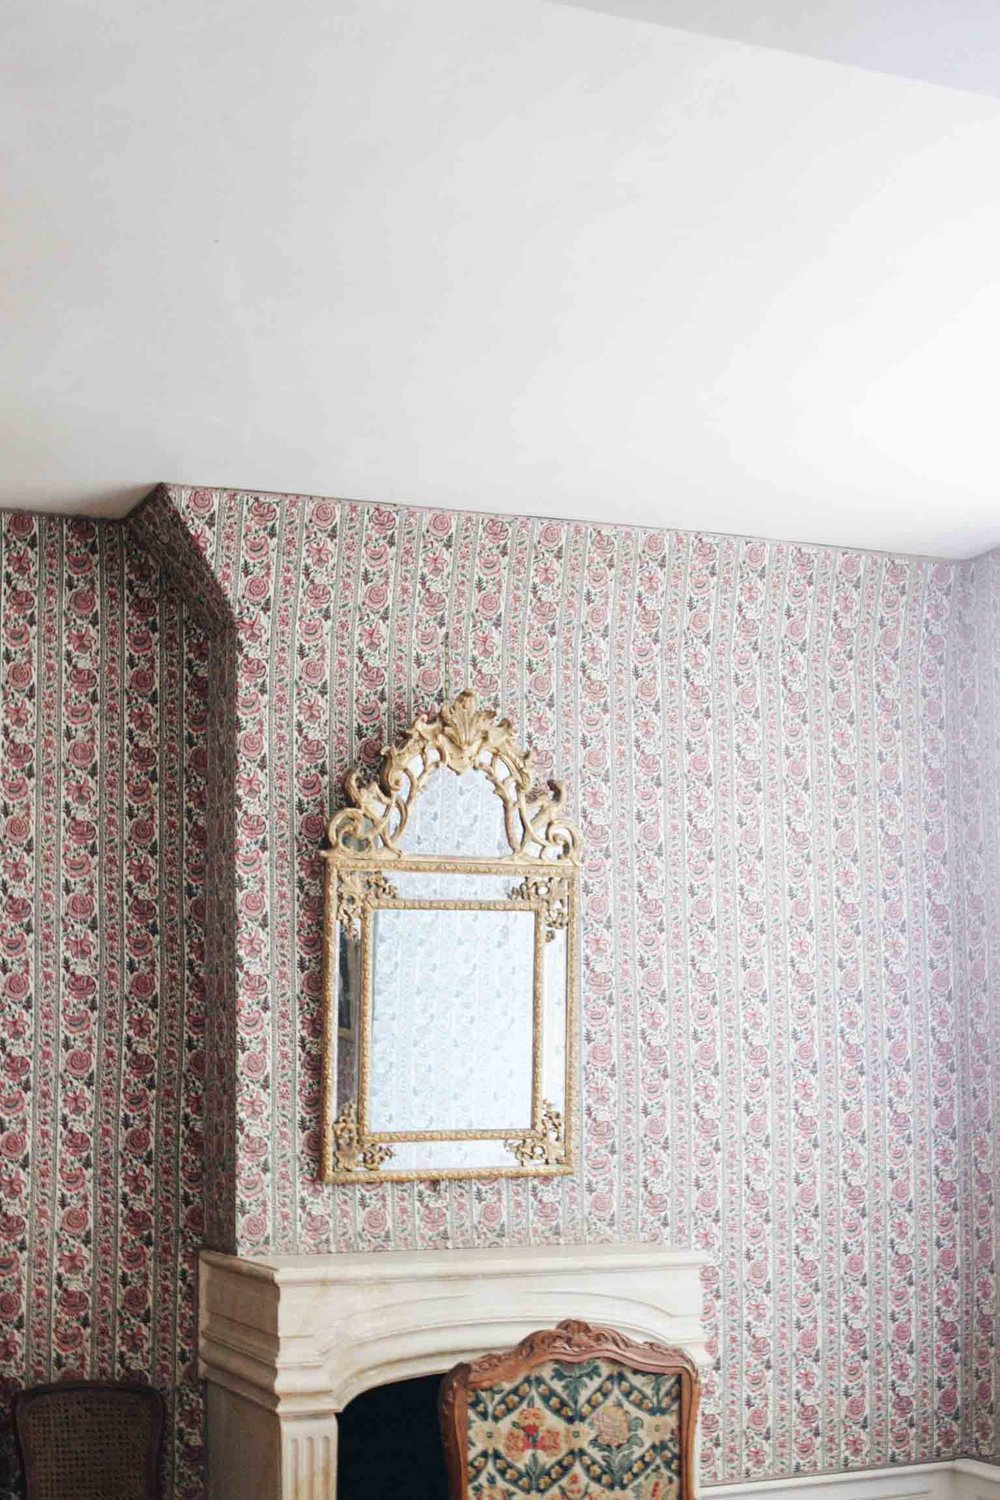 Something about this mirror, the wallpaper, and that fireplace.... all the feels!